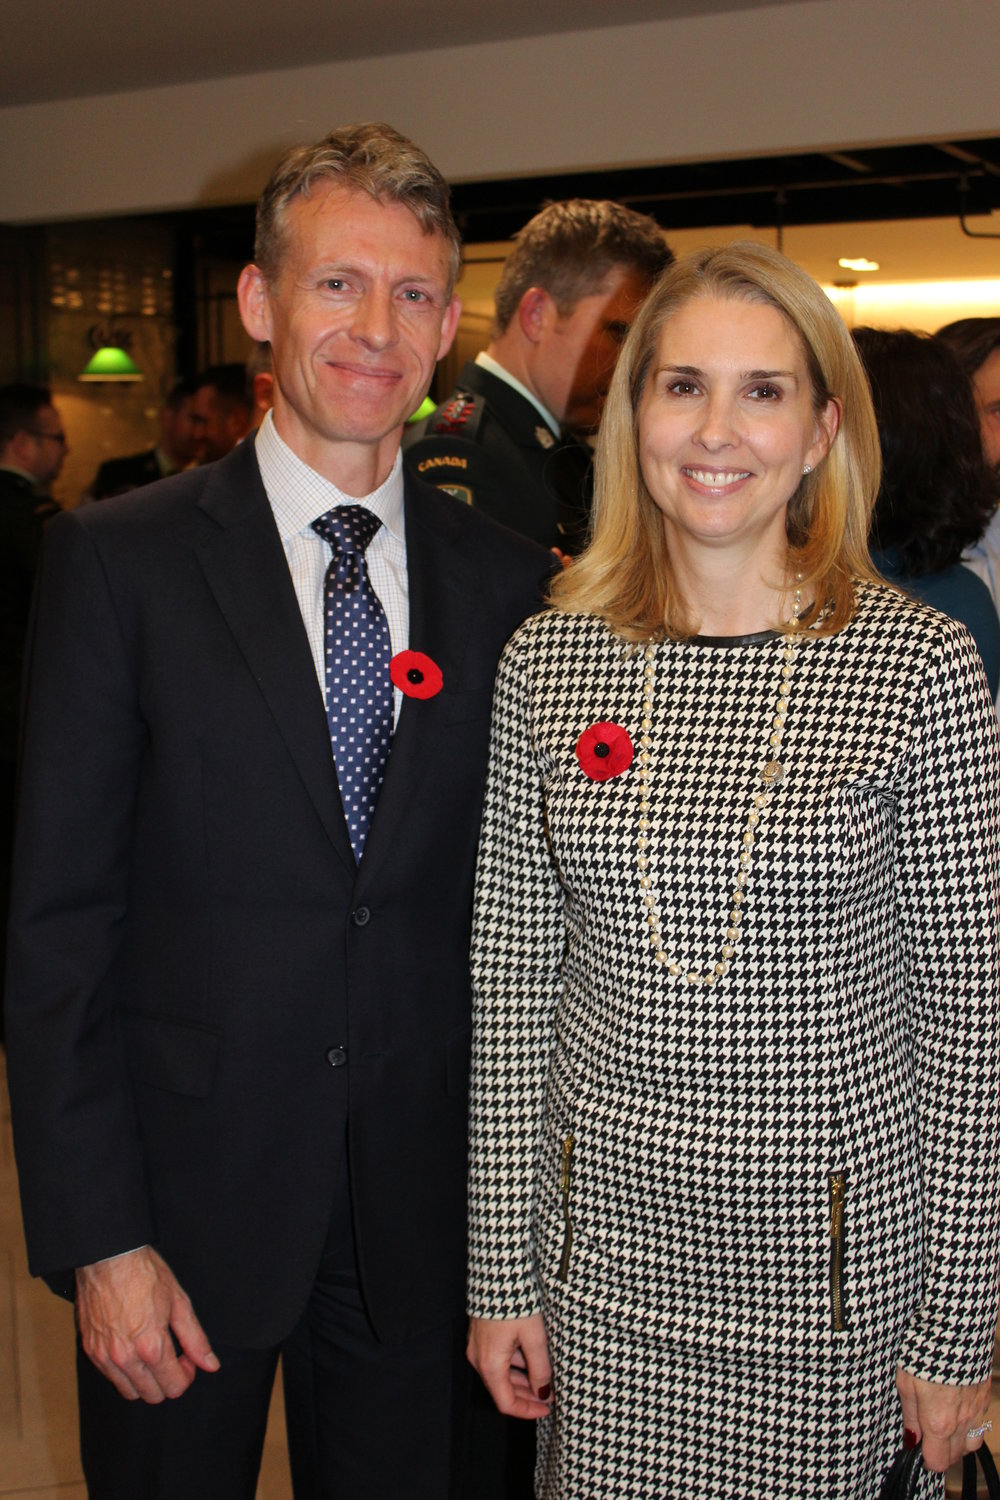 Ross Anderson, Head of Public Policy & Global Responsibility at Starbucks Canada with Bronwen Evans, CEO of TPL.